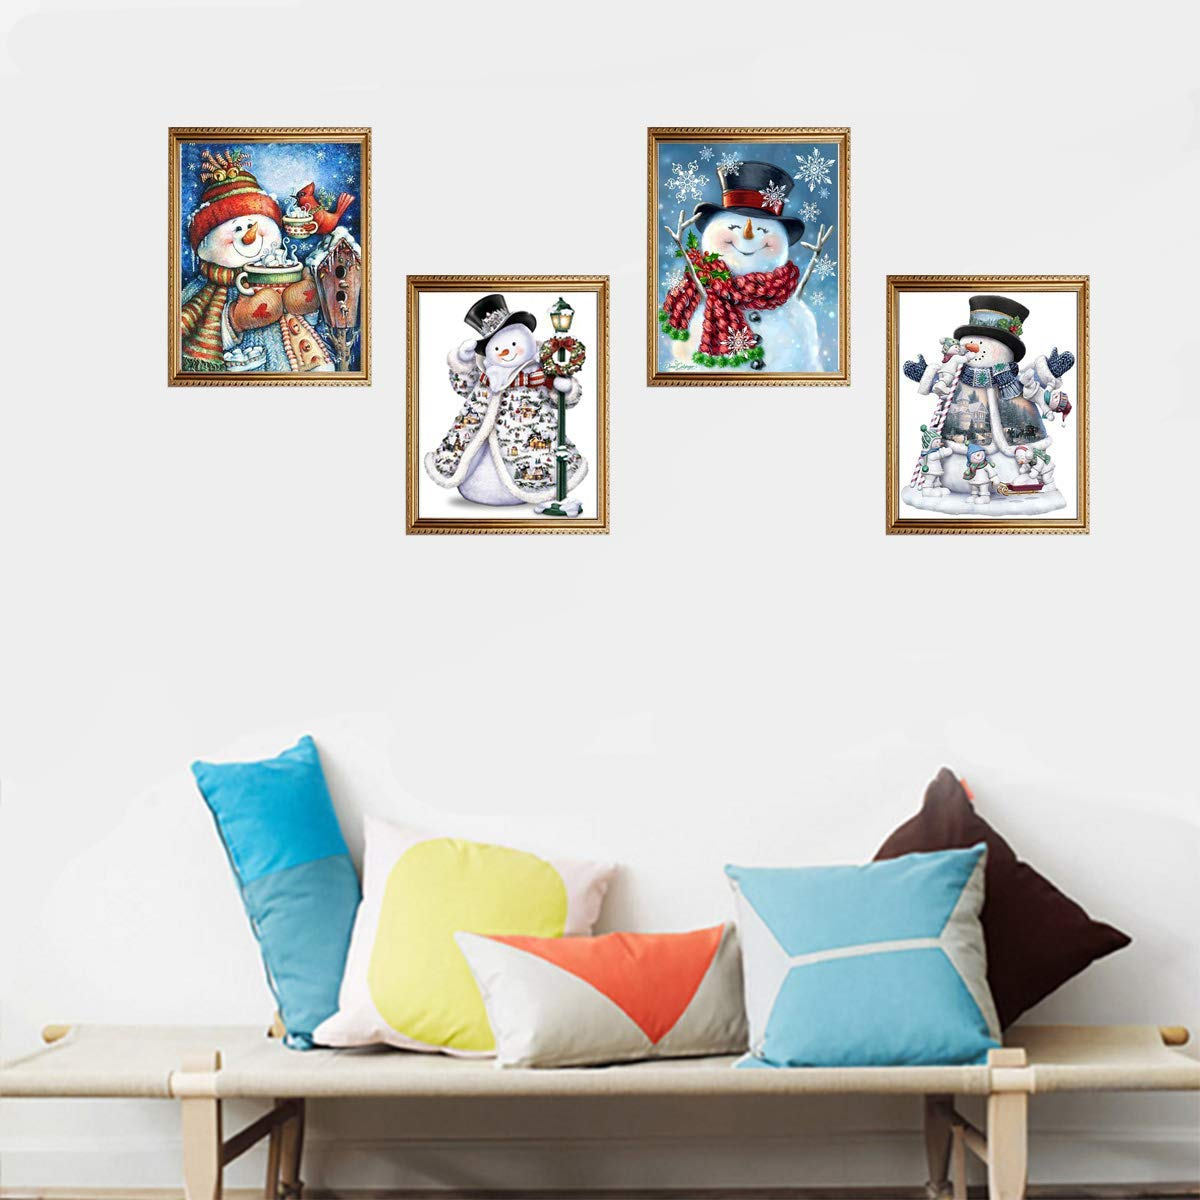 4 Pack 5D DIY Diamond Painting Kit Full Drill Wall Hanging Diamond Painting Set for Christmas Home Wall Living Room Decor Snowman 10.4/×14.4 inches//26/×36cm